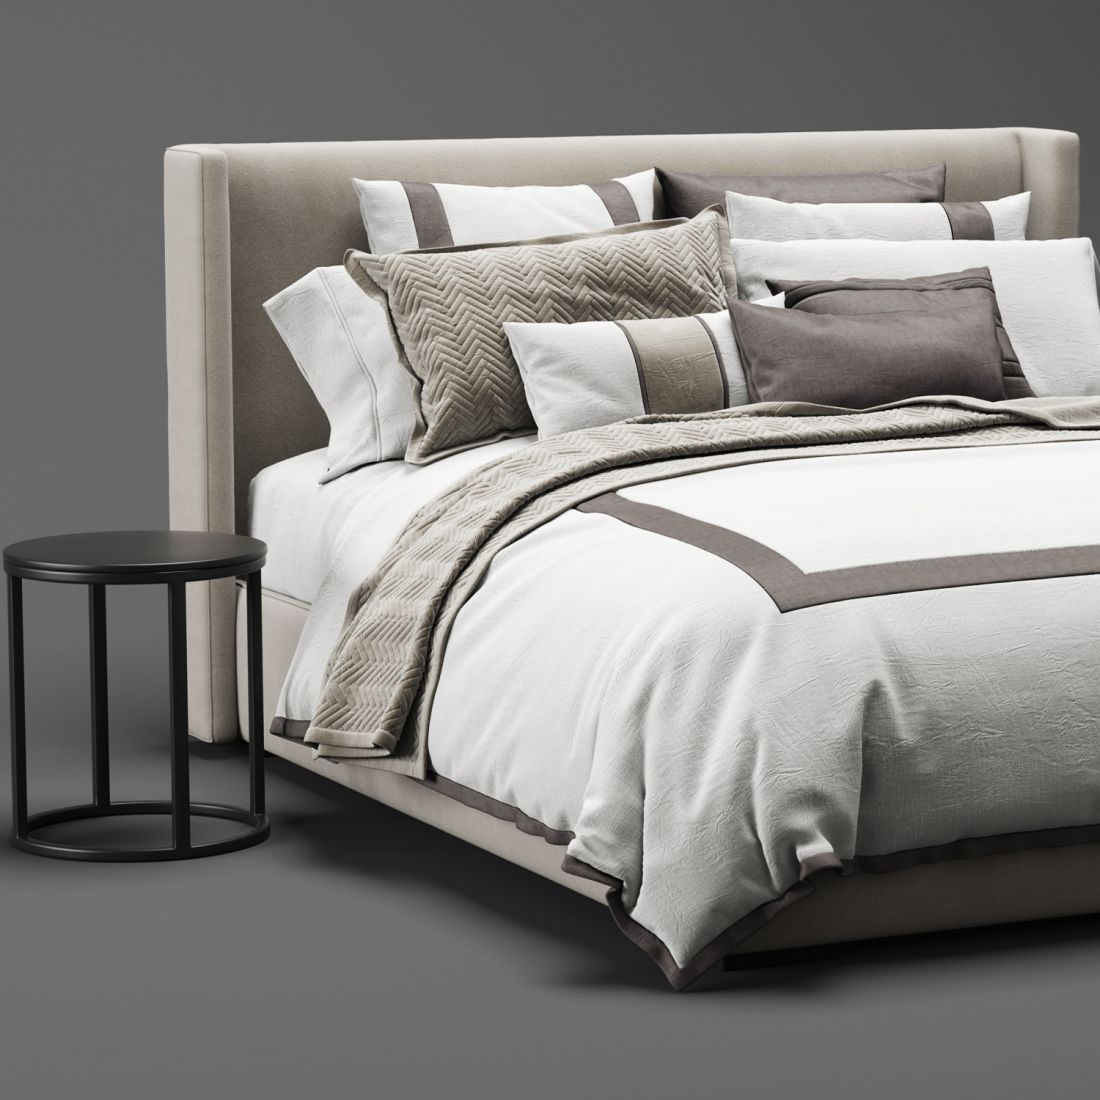 Rh Lawson Bed 3d Model For Vray